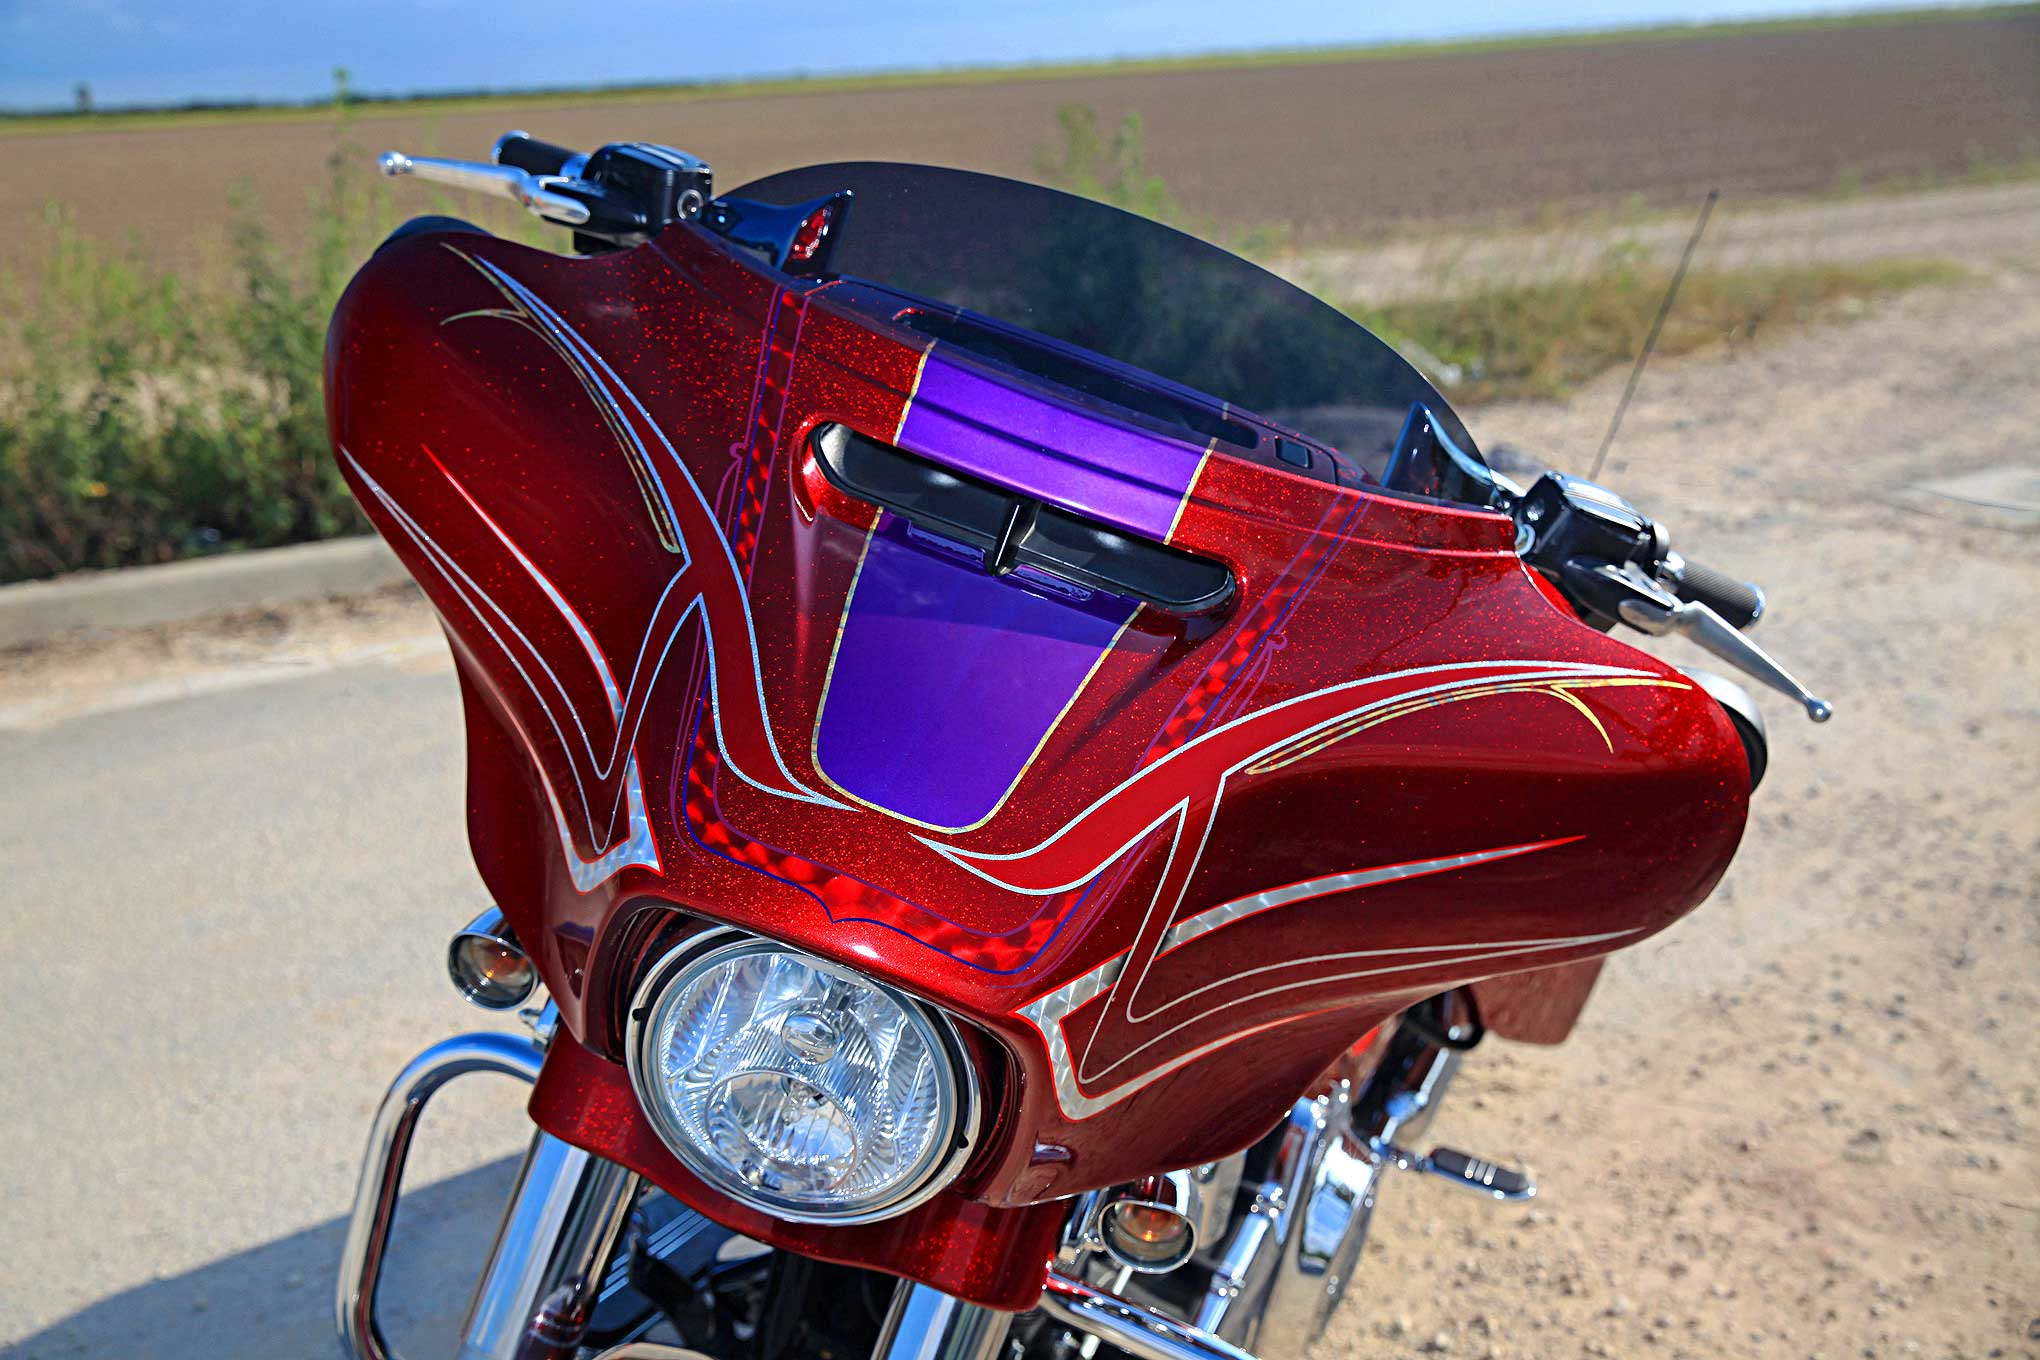 2015 Harley Davidson Street Glide A Therapeutic Build